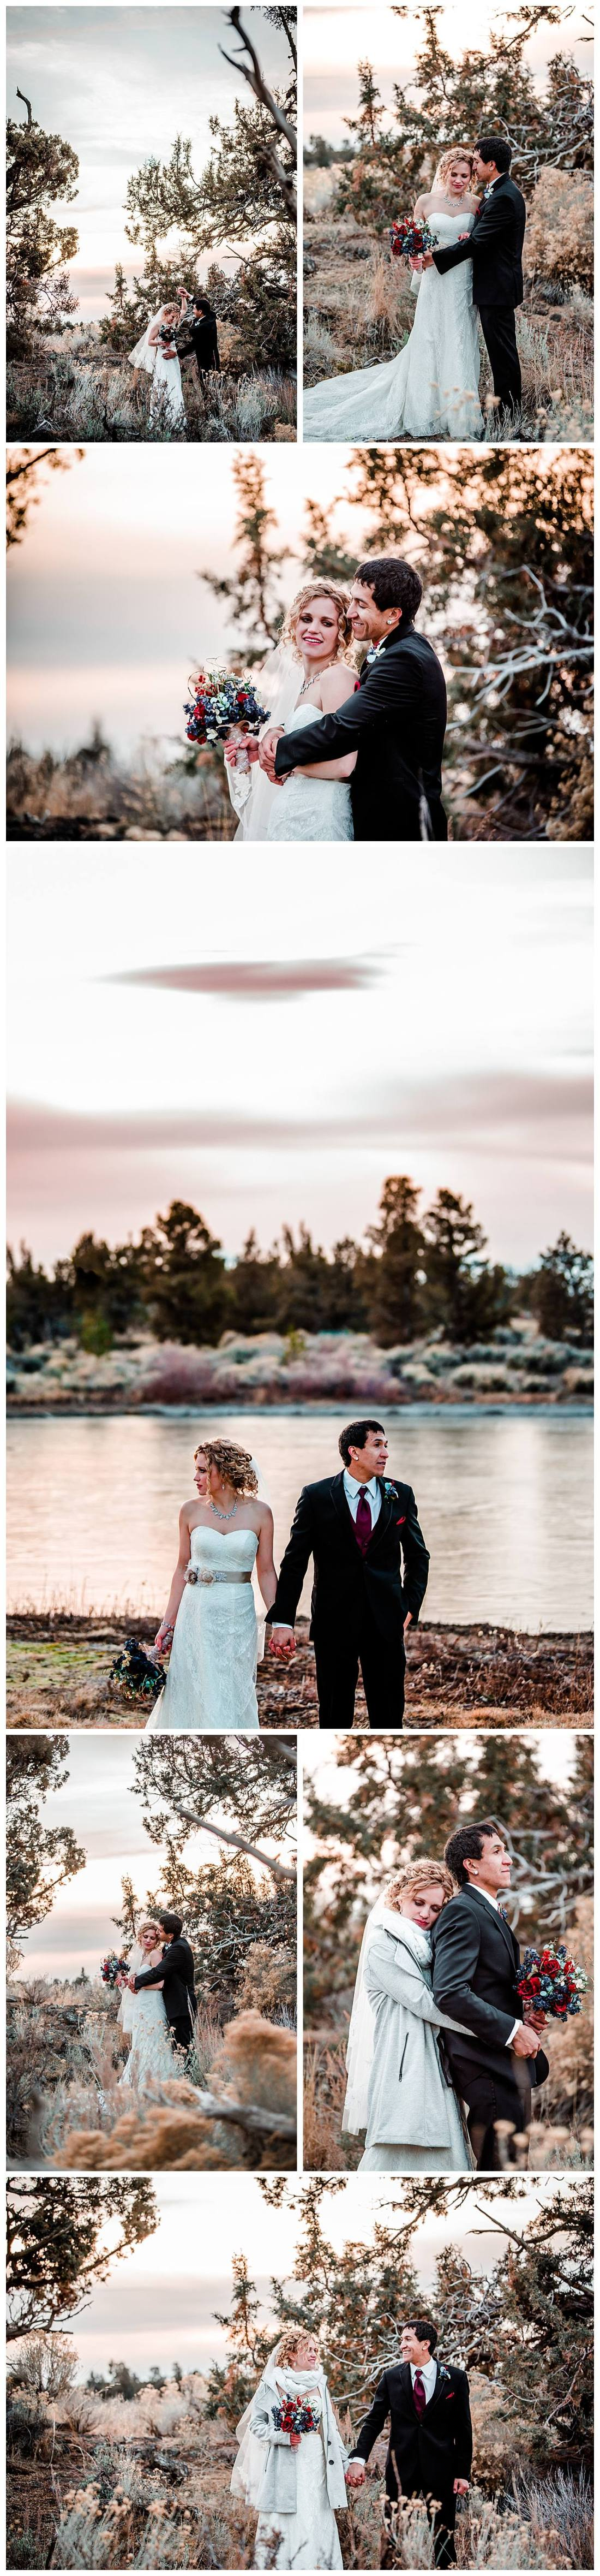 Pronghorn Resort wedding photos by Dionne kraus Photography